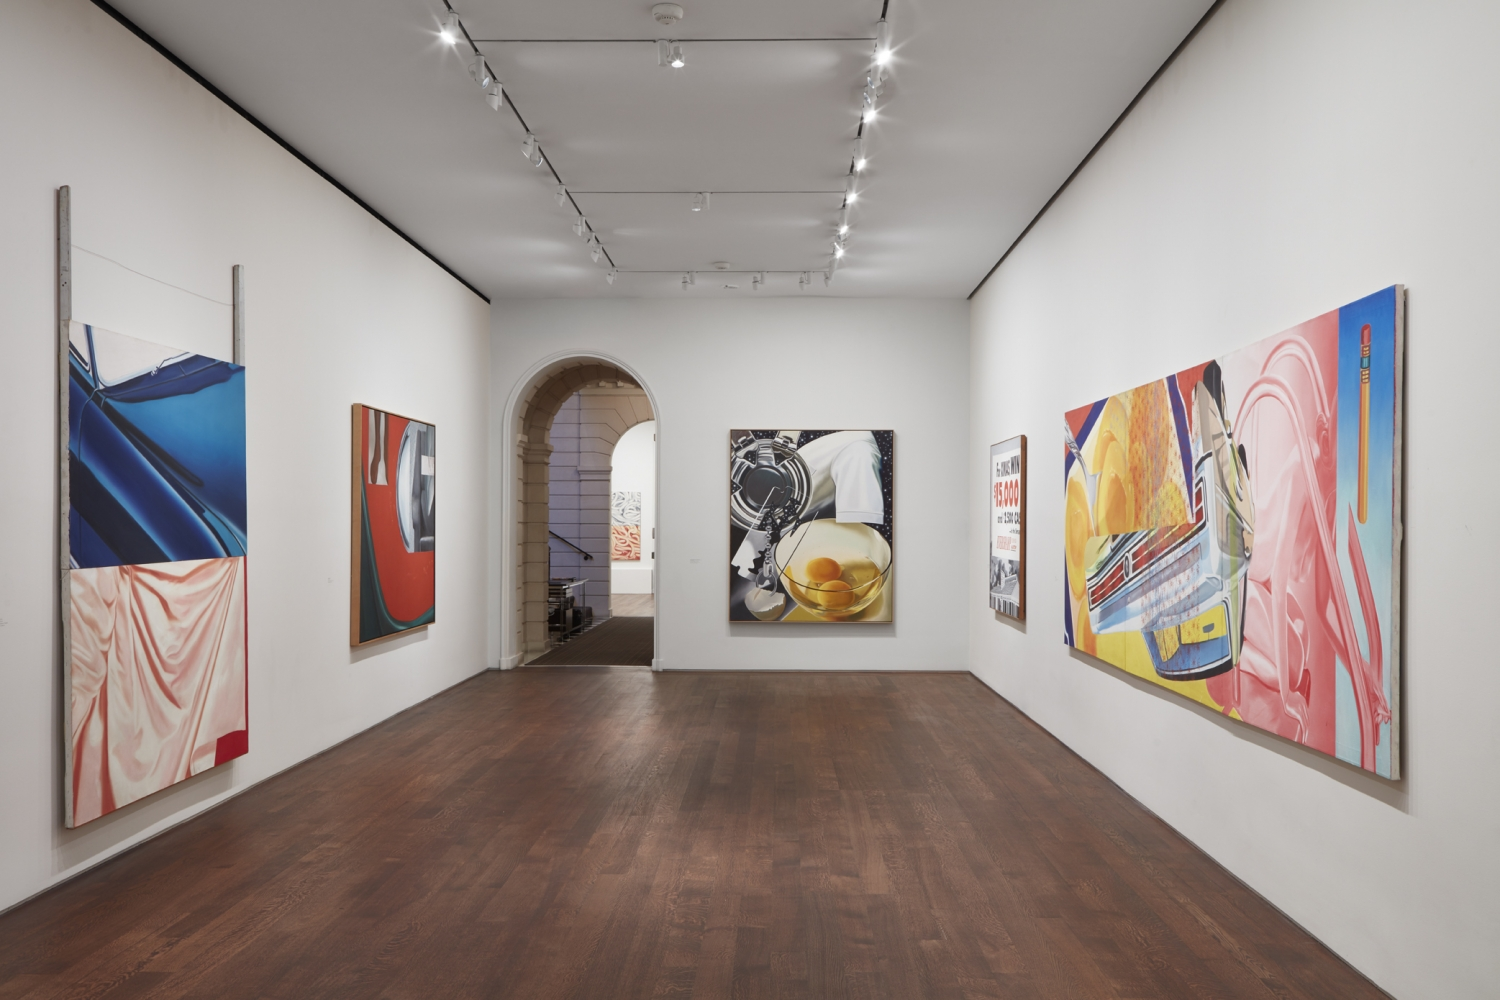 Installation view of James Rosenquist: His American Life, October 25 - December 7, 2018. © Estate of James Rosenquist / Licensed by VAGA at ARS, New York.